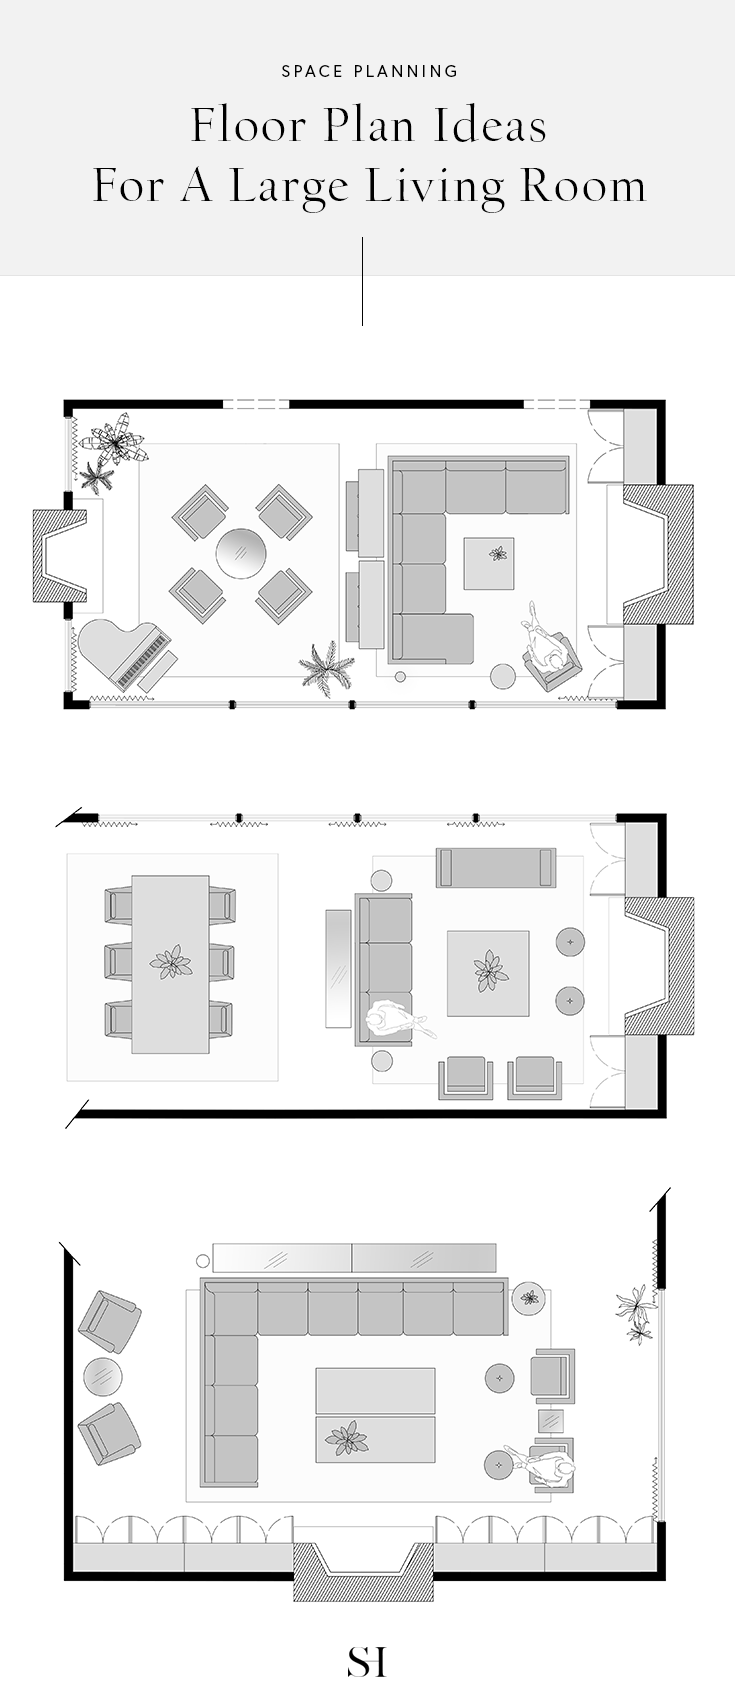 5 Furniture Layout Ideas For A Large Living Room With Floor Plans The Savvy Heart Rectangular Living Rooms Large Living Room Design Living Room Floor Plans